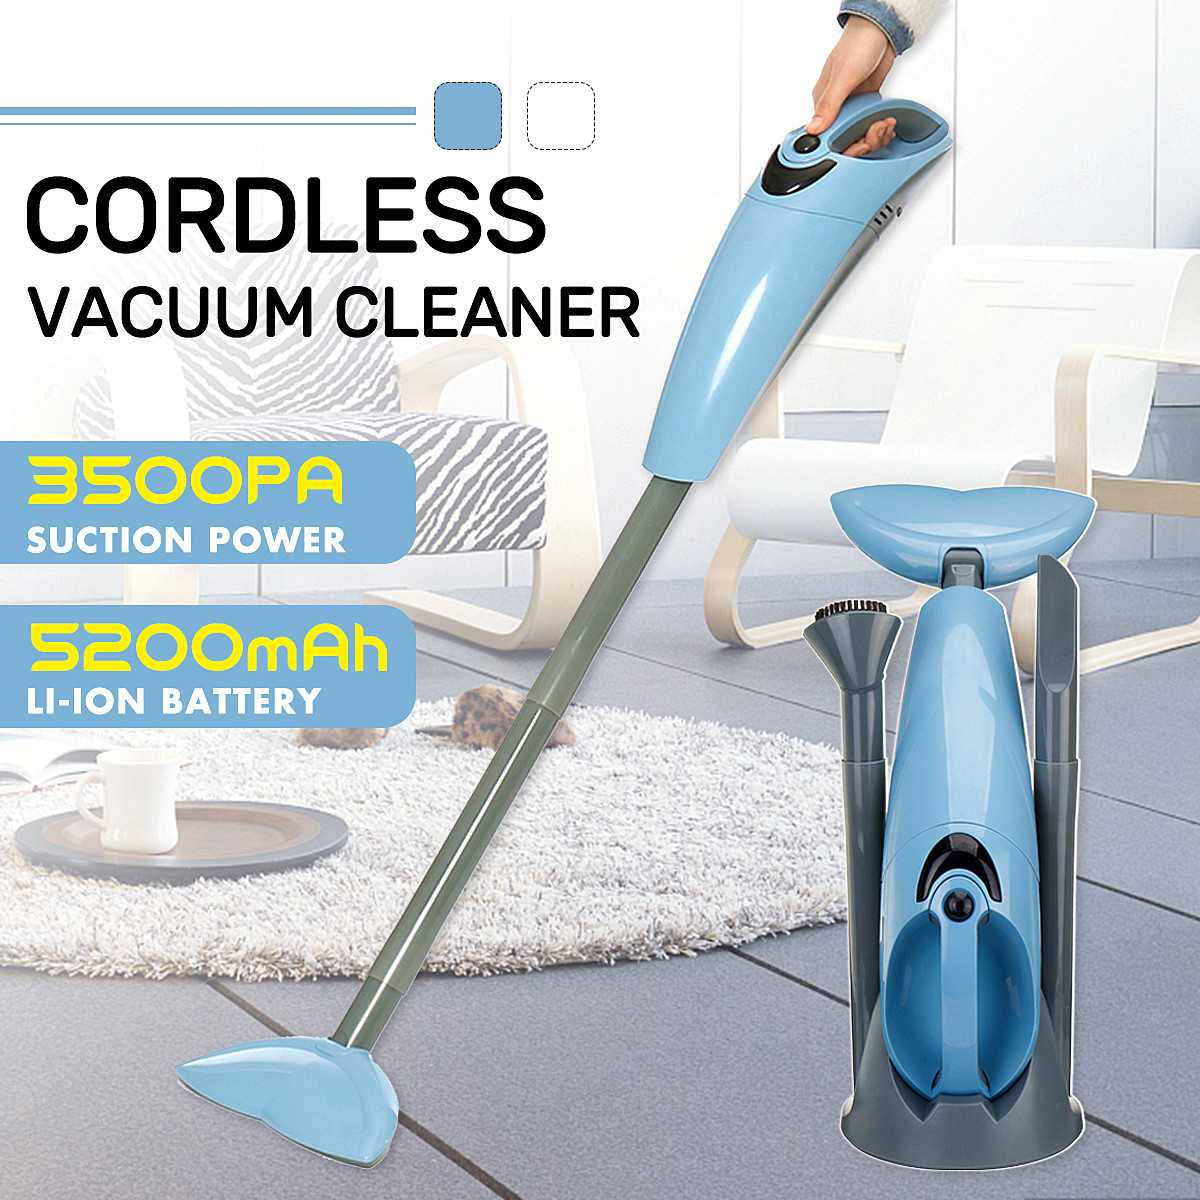 100W Handheld Wireless Vacuum Cleaner Portable Household Dust Collector and Aspirator HEPA Filter Strong Suction Cleaning Tool100W Handheld Wireless Vacuum Cleaner Portable Household Dust Collector and Aspirator HEPA Filter Strong Suction Cleaning Tool